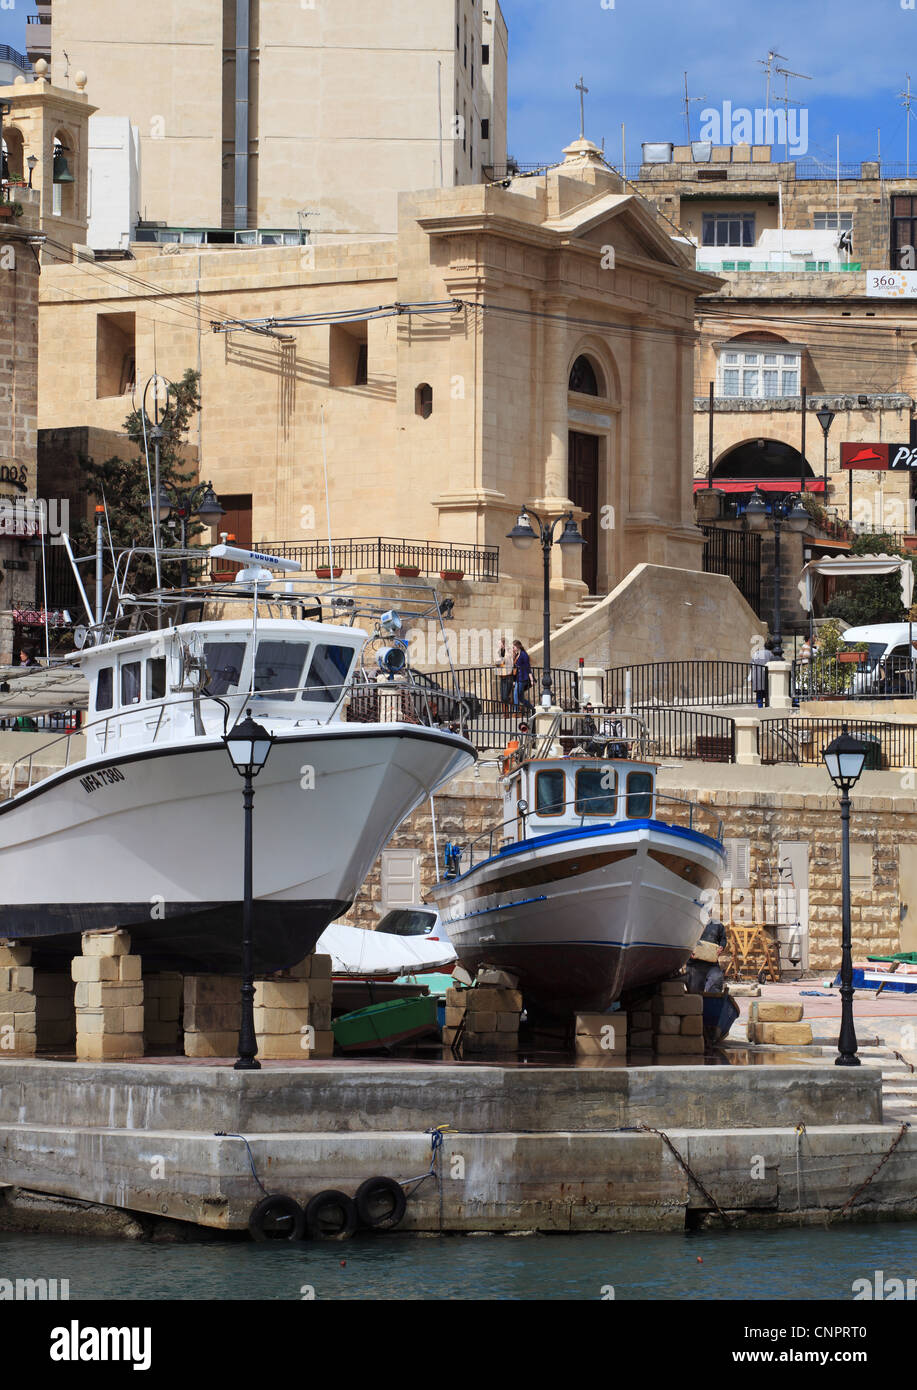 Fishing boats being repaired  Spinola Bay St Julian's Malta, Europe - Stock Image